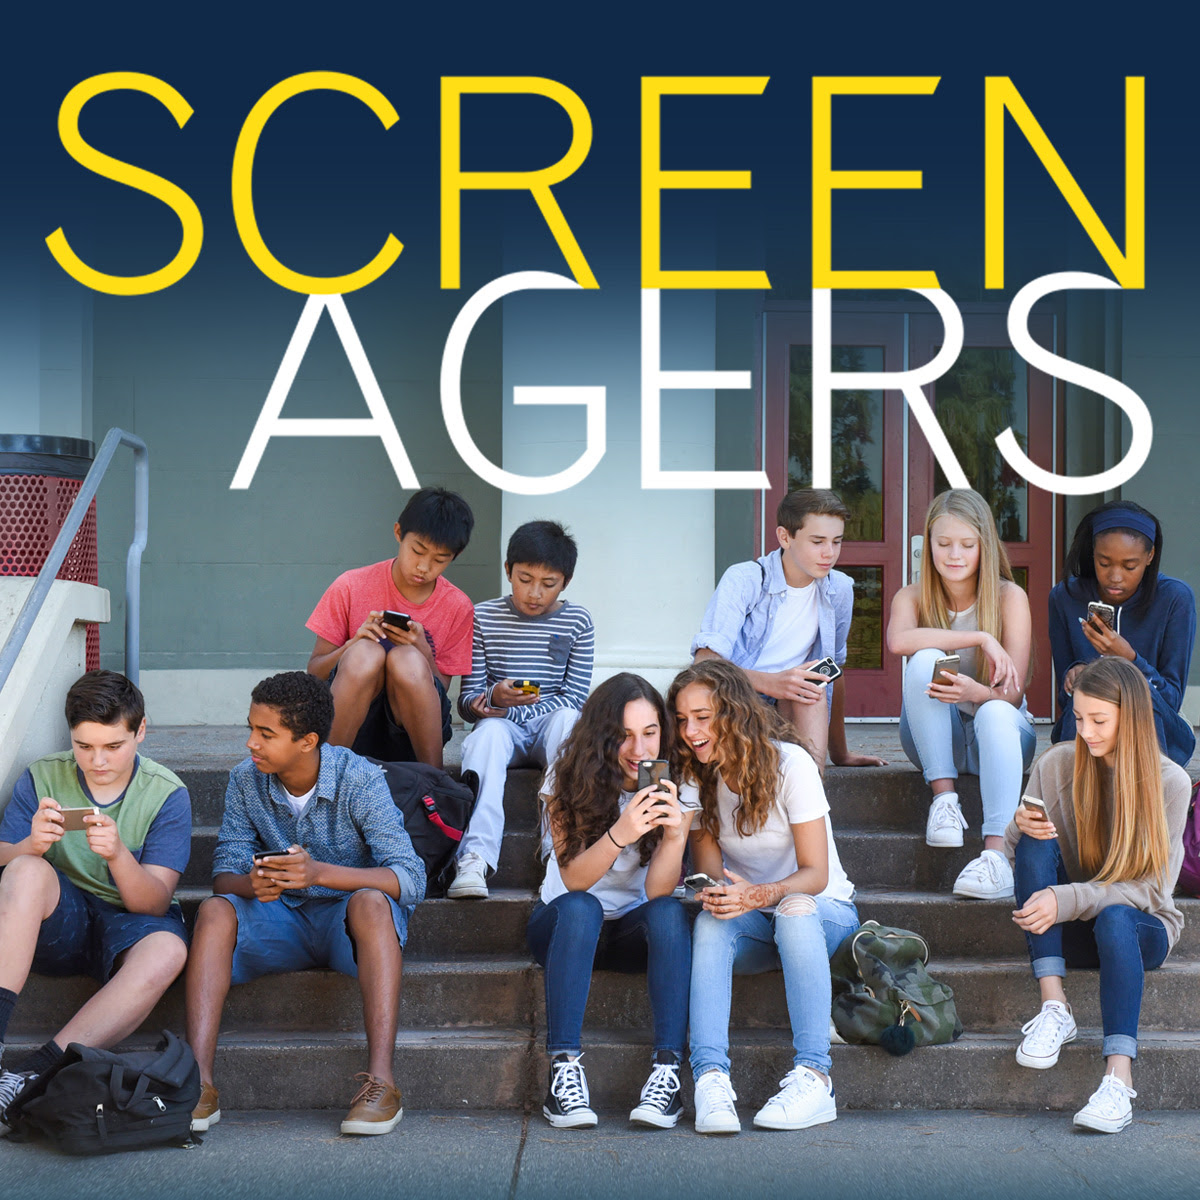 Screenagers Film Presented By Mount View Middle School